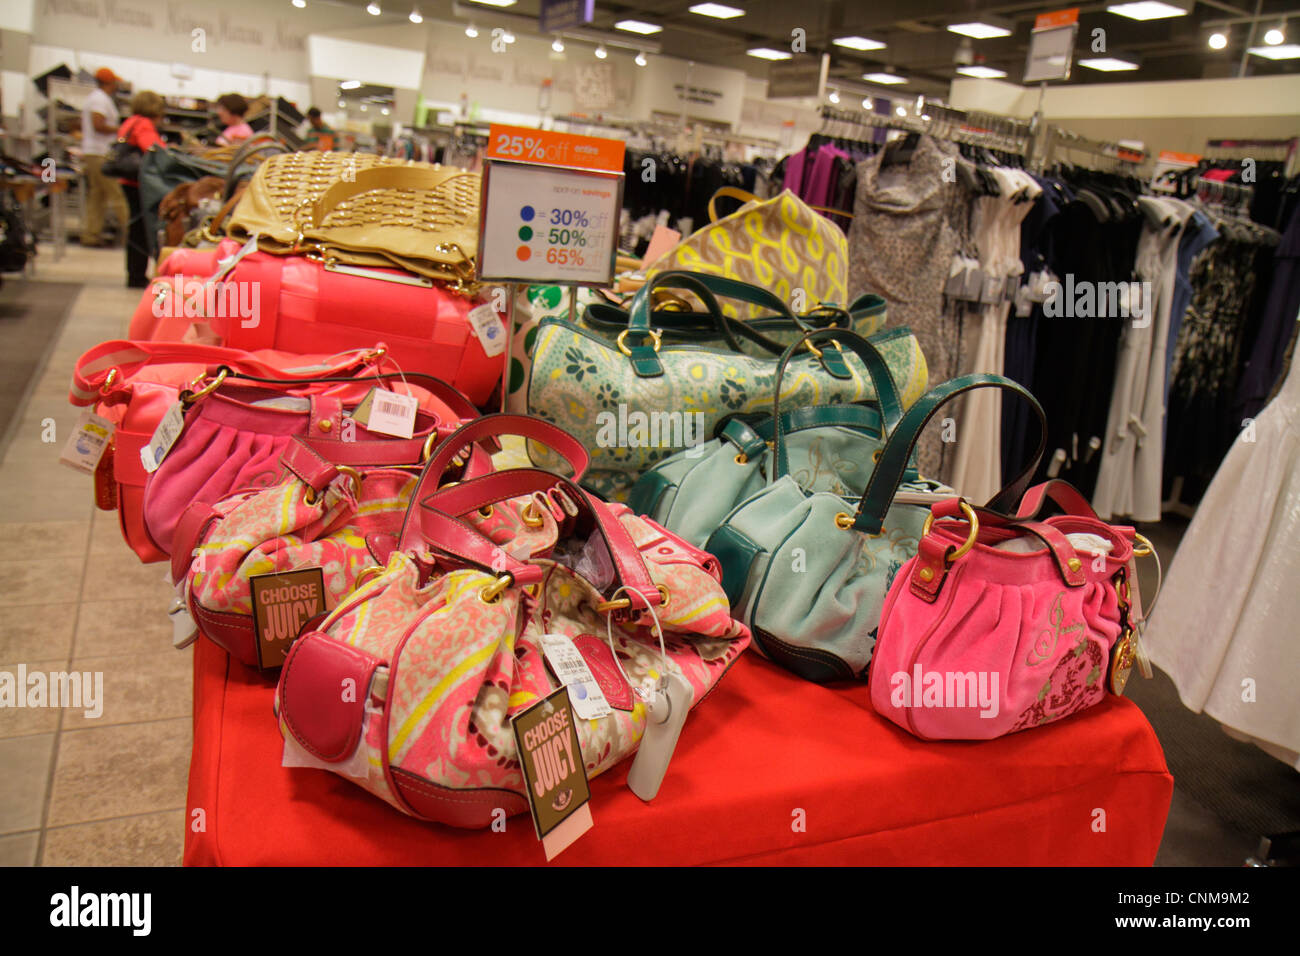 Miami Florida Sweetwater Dolphin Mall shopping Neiman Marcus Last Call  Clearance Center centre sale discount women s faea2962cc65d